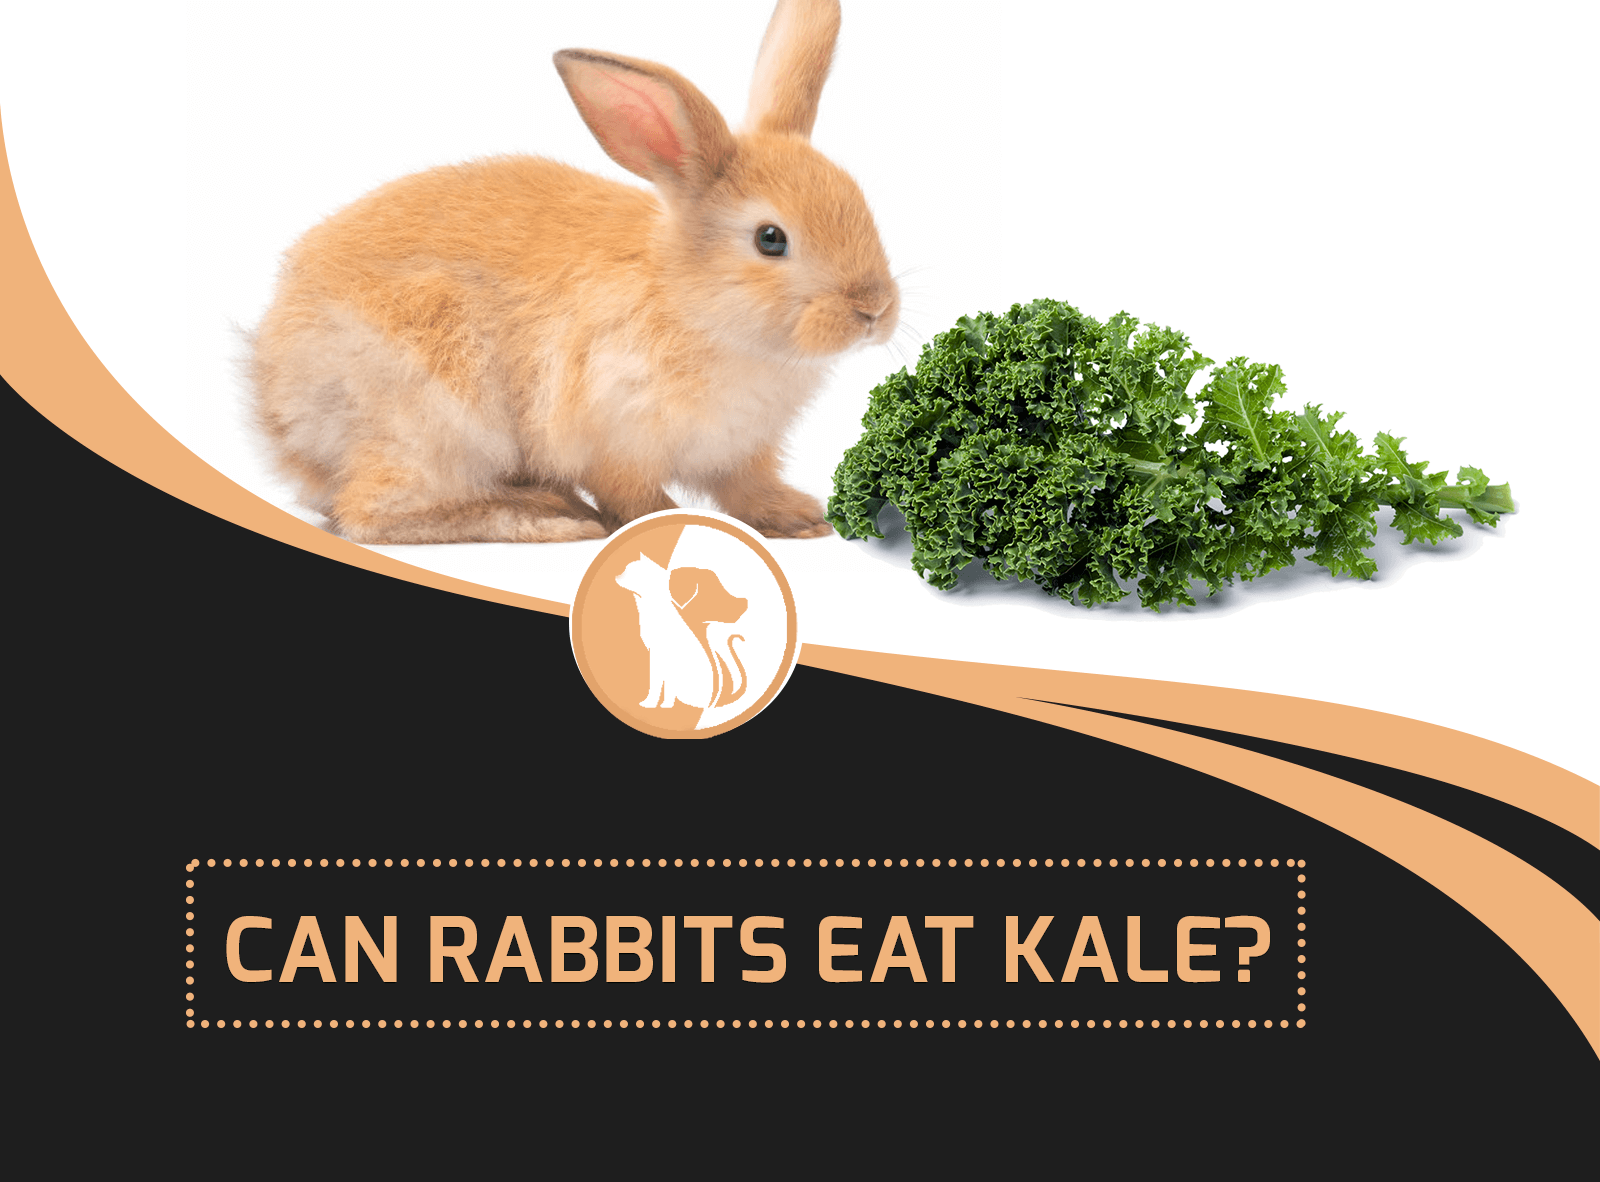 Can Rabbits Eat Kale?